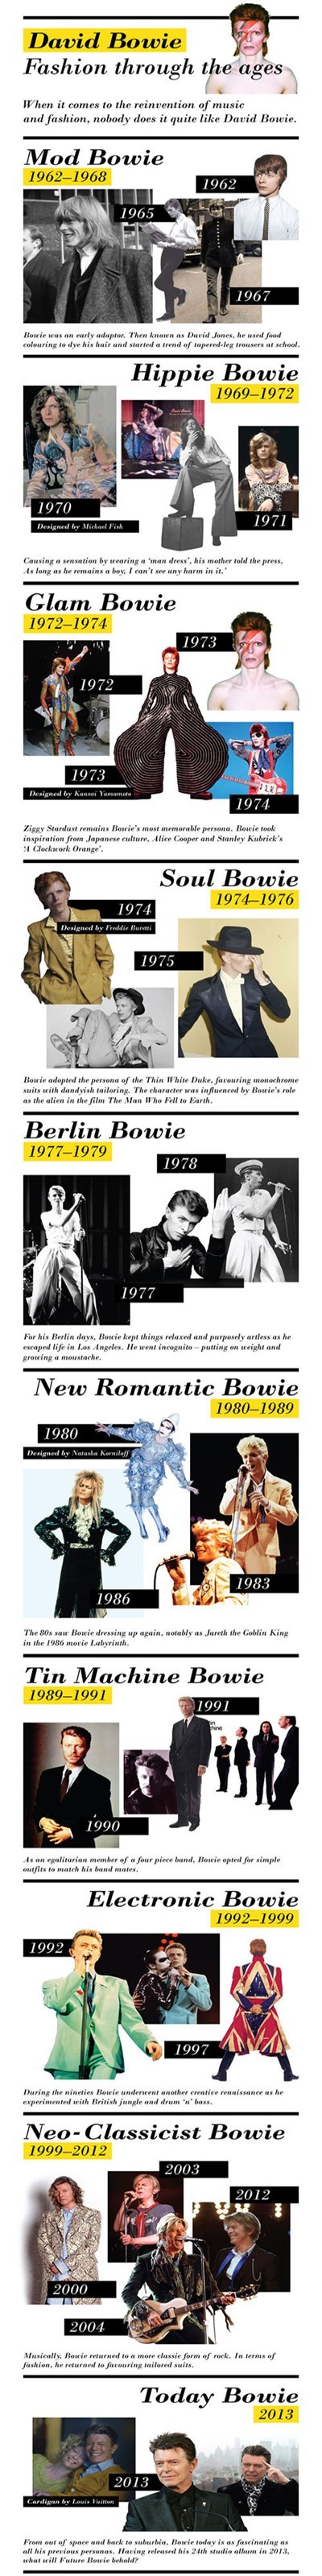 David Bowie: Fashion Through the Ages